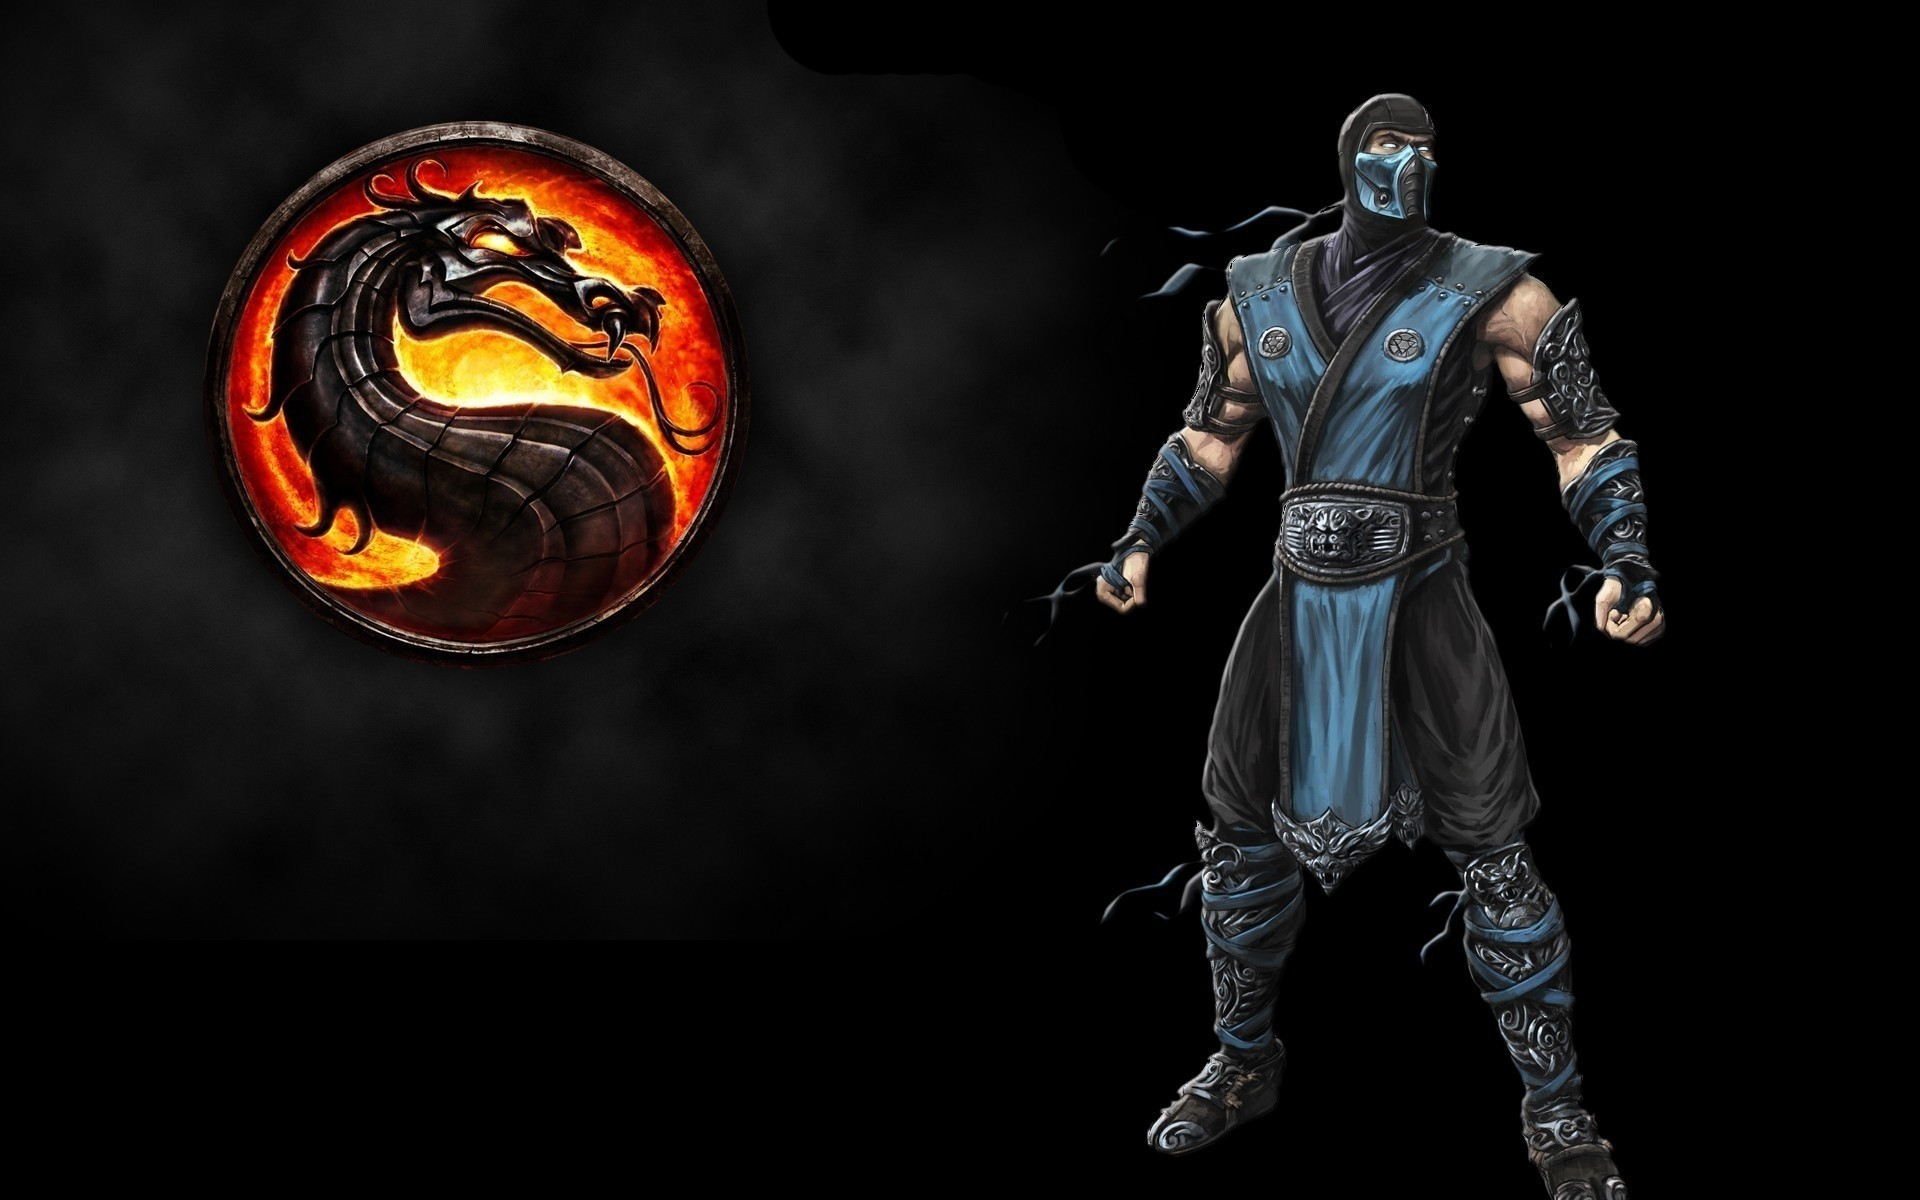 1920x1200 Mortal Kombat wallpaper Sub-Zero 7